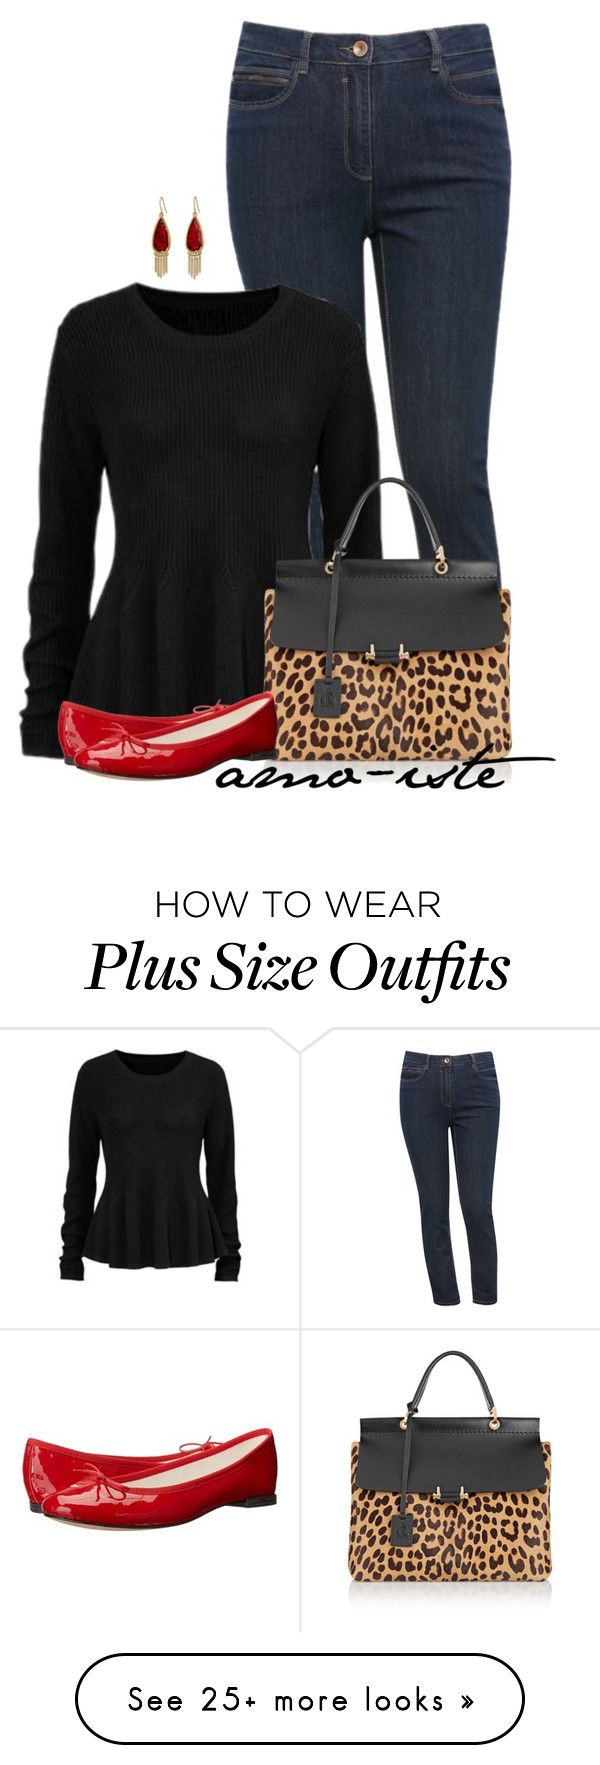 """""""Black Sweater - Plus Size"""" by amo-iste on Polyvore featuring moda, M&Co, Lanvin, The Sak y Repetto"""